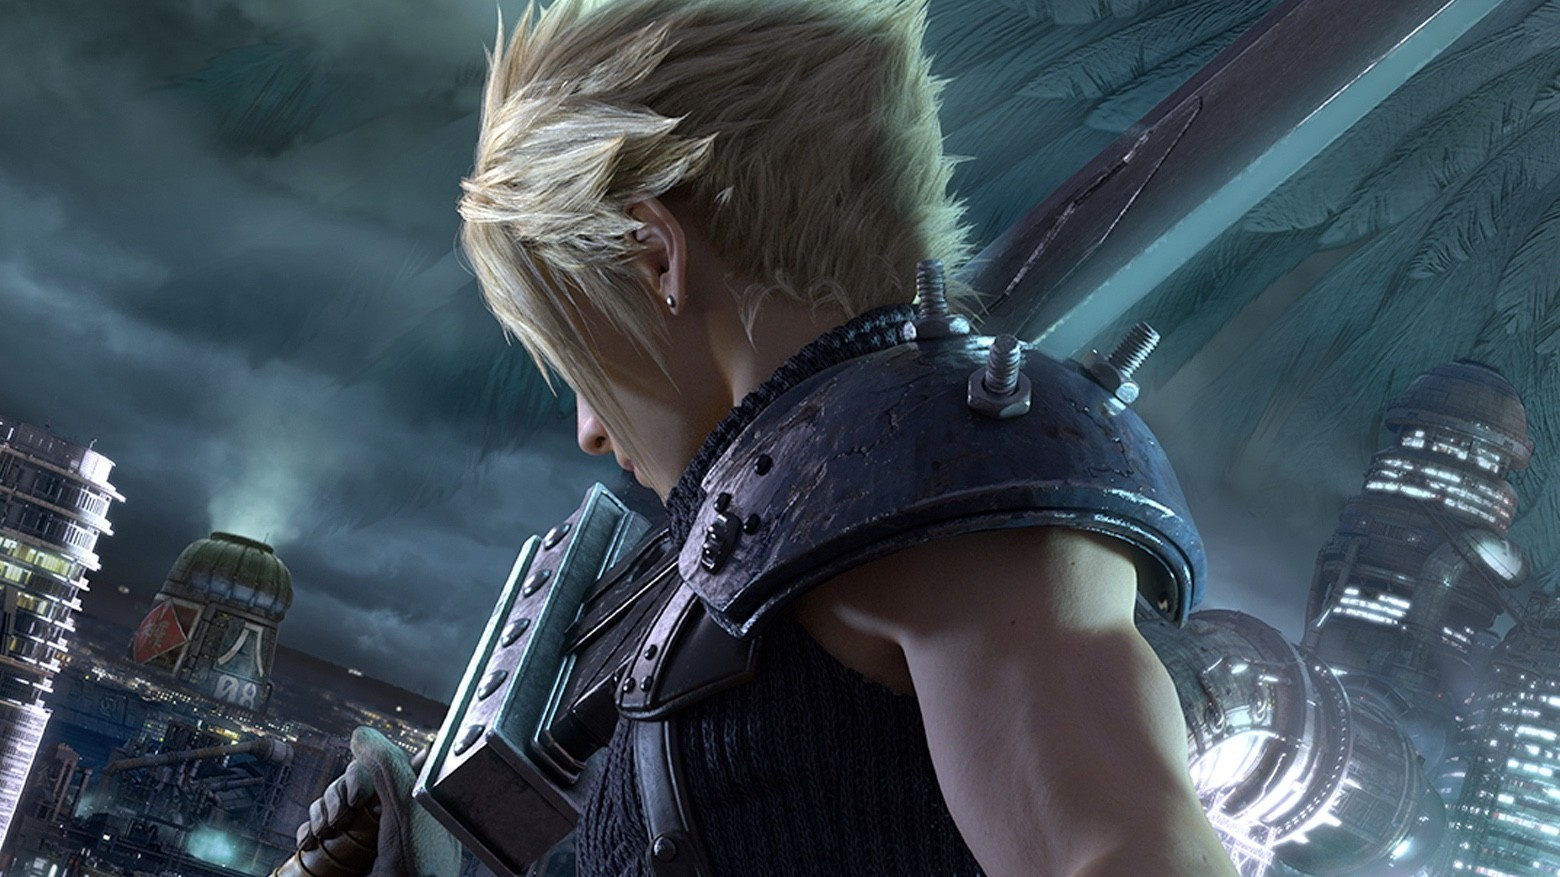 There's Speculation that Final Fantasy VII Remake May Reappear in Time for E3